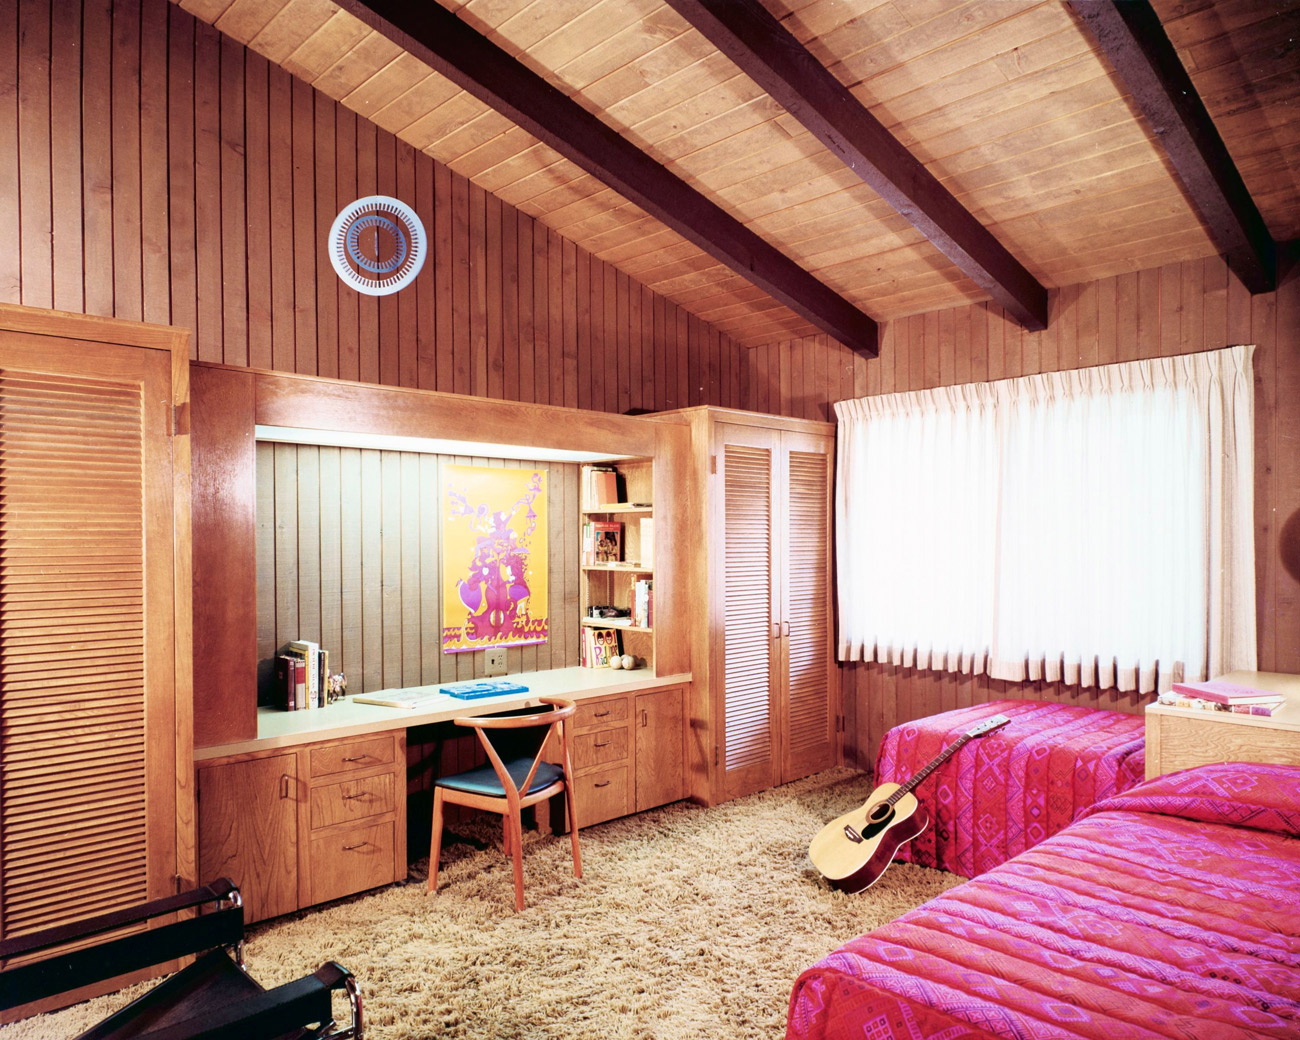 Wood paneled bedroom with slanting wood ceiling, two twin beds with pink linens, a desk and an acoustic guitar